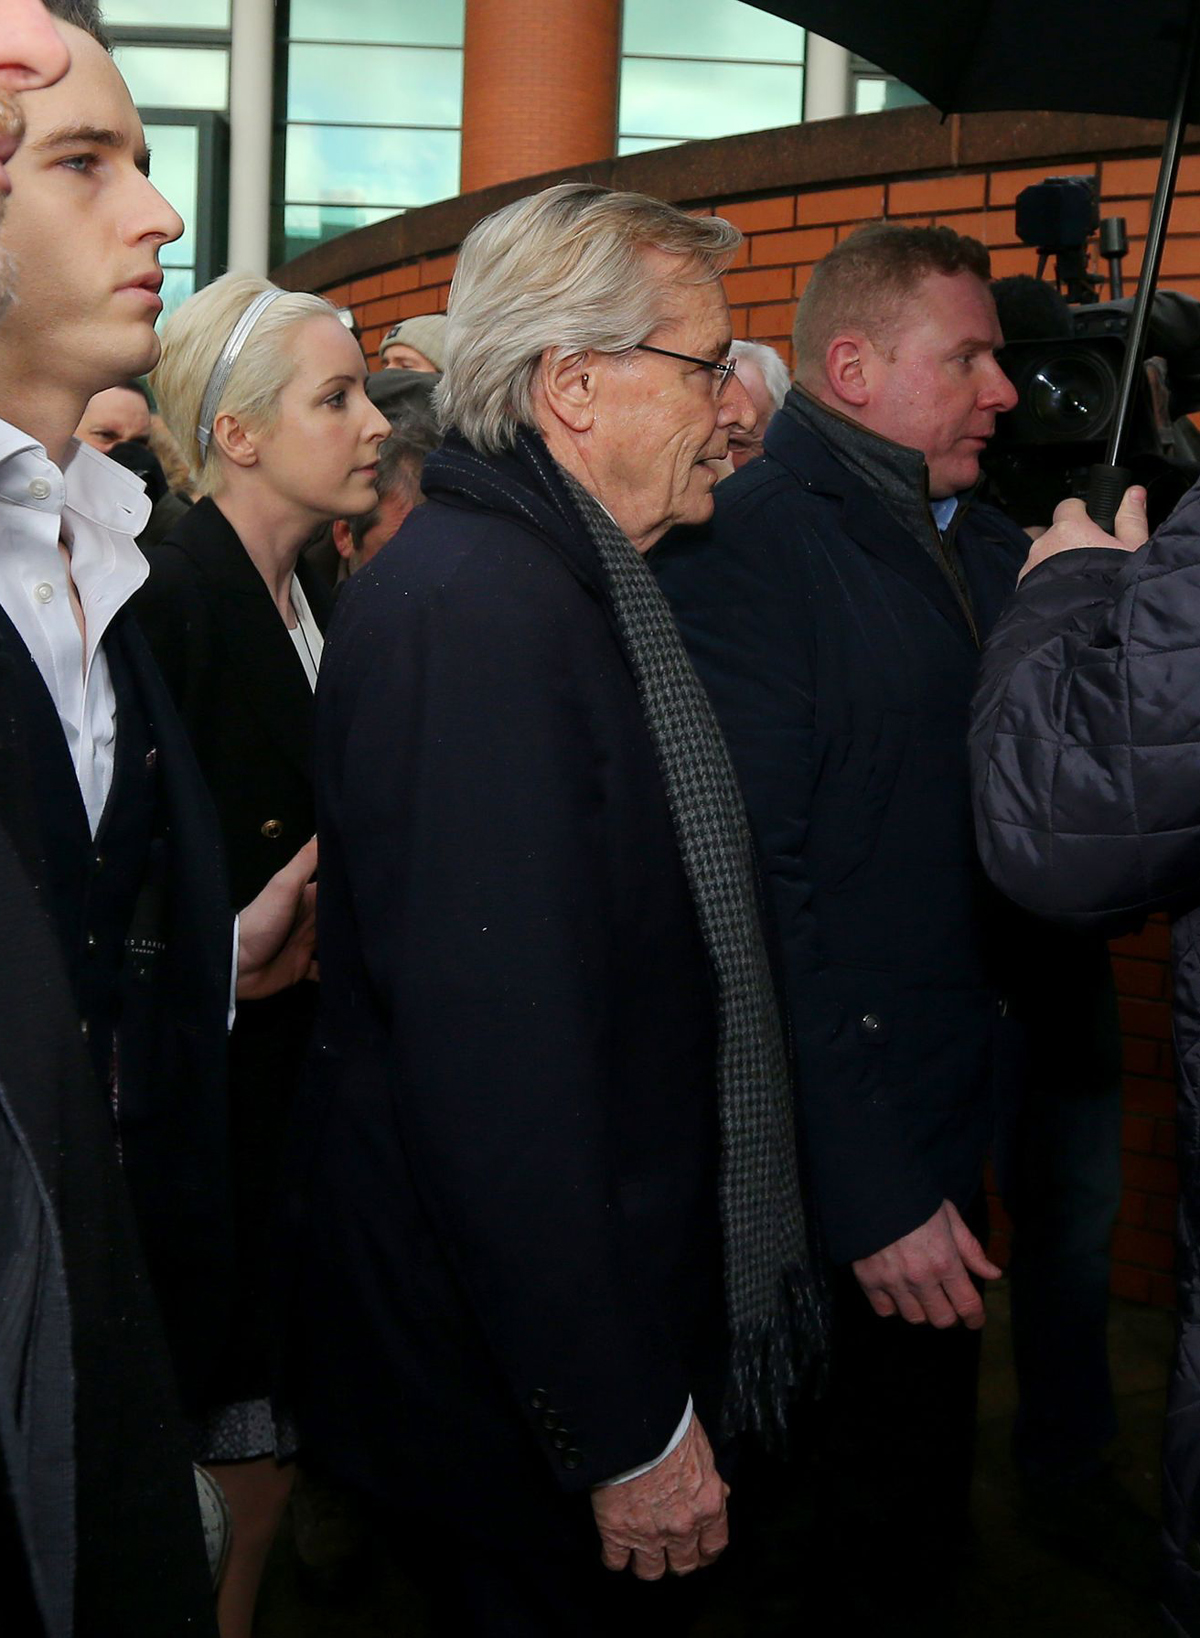 UPDATED: Coronation Street star William Roache to go on trial today